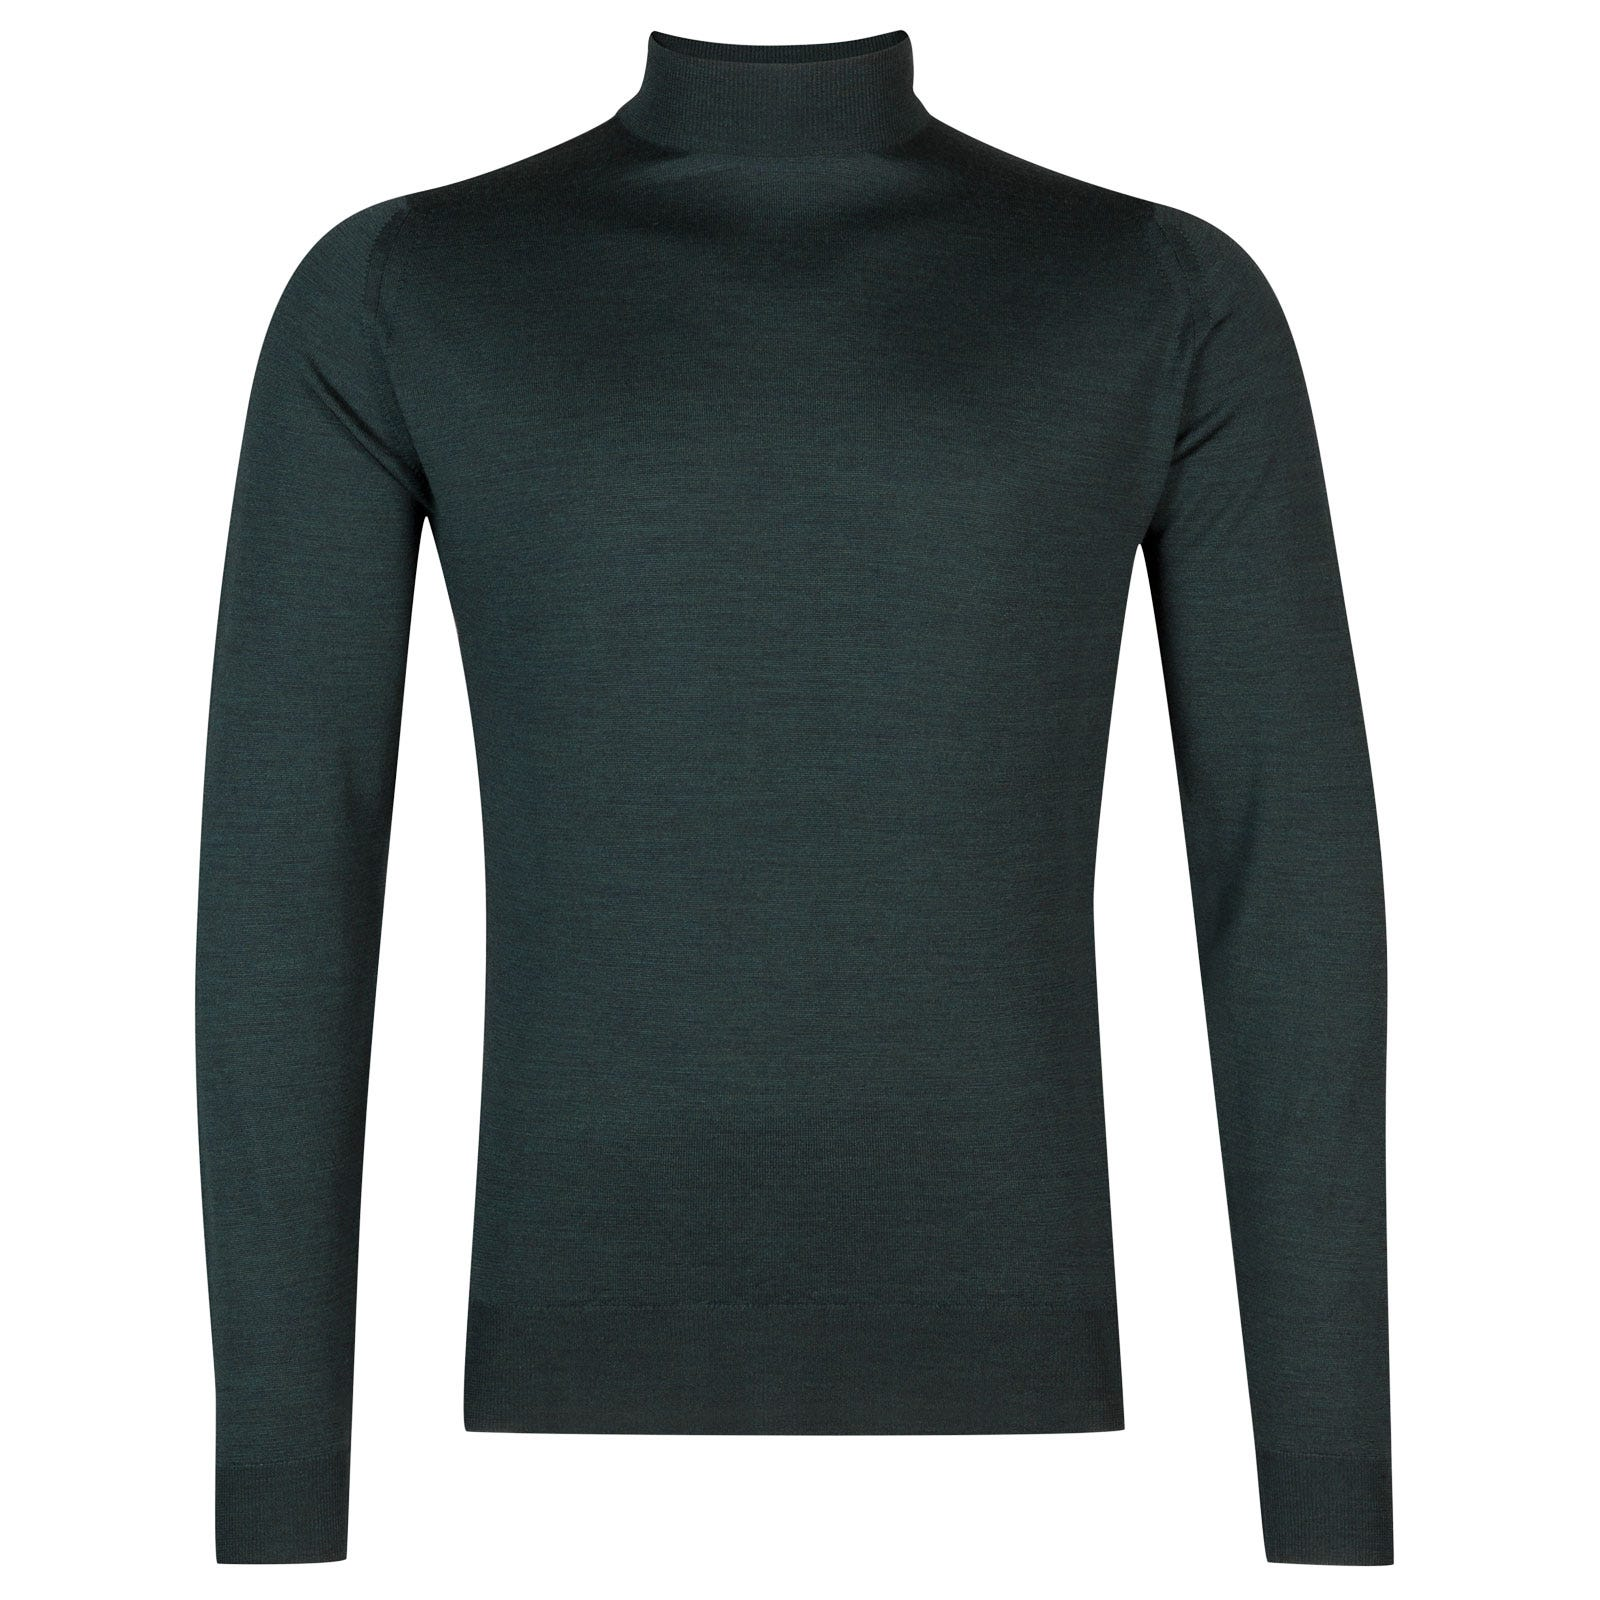 John Smedley harcourt Merino Wool Pullover in Racing Green-S